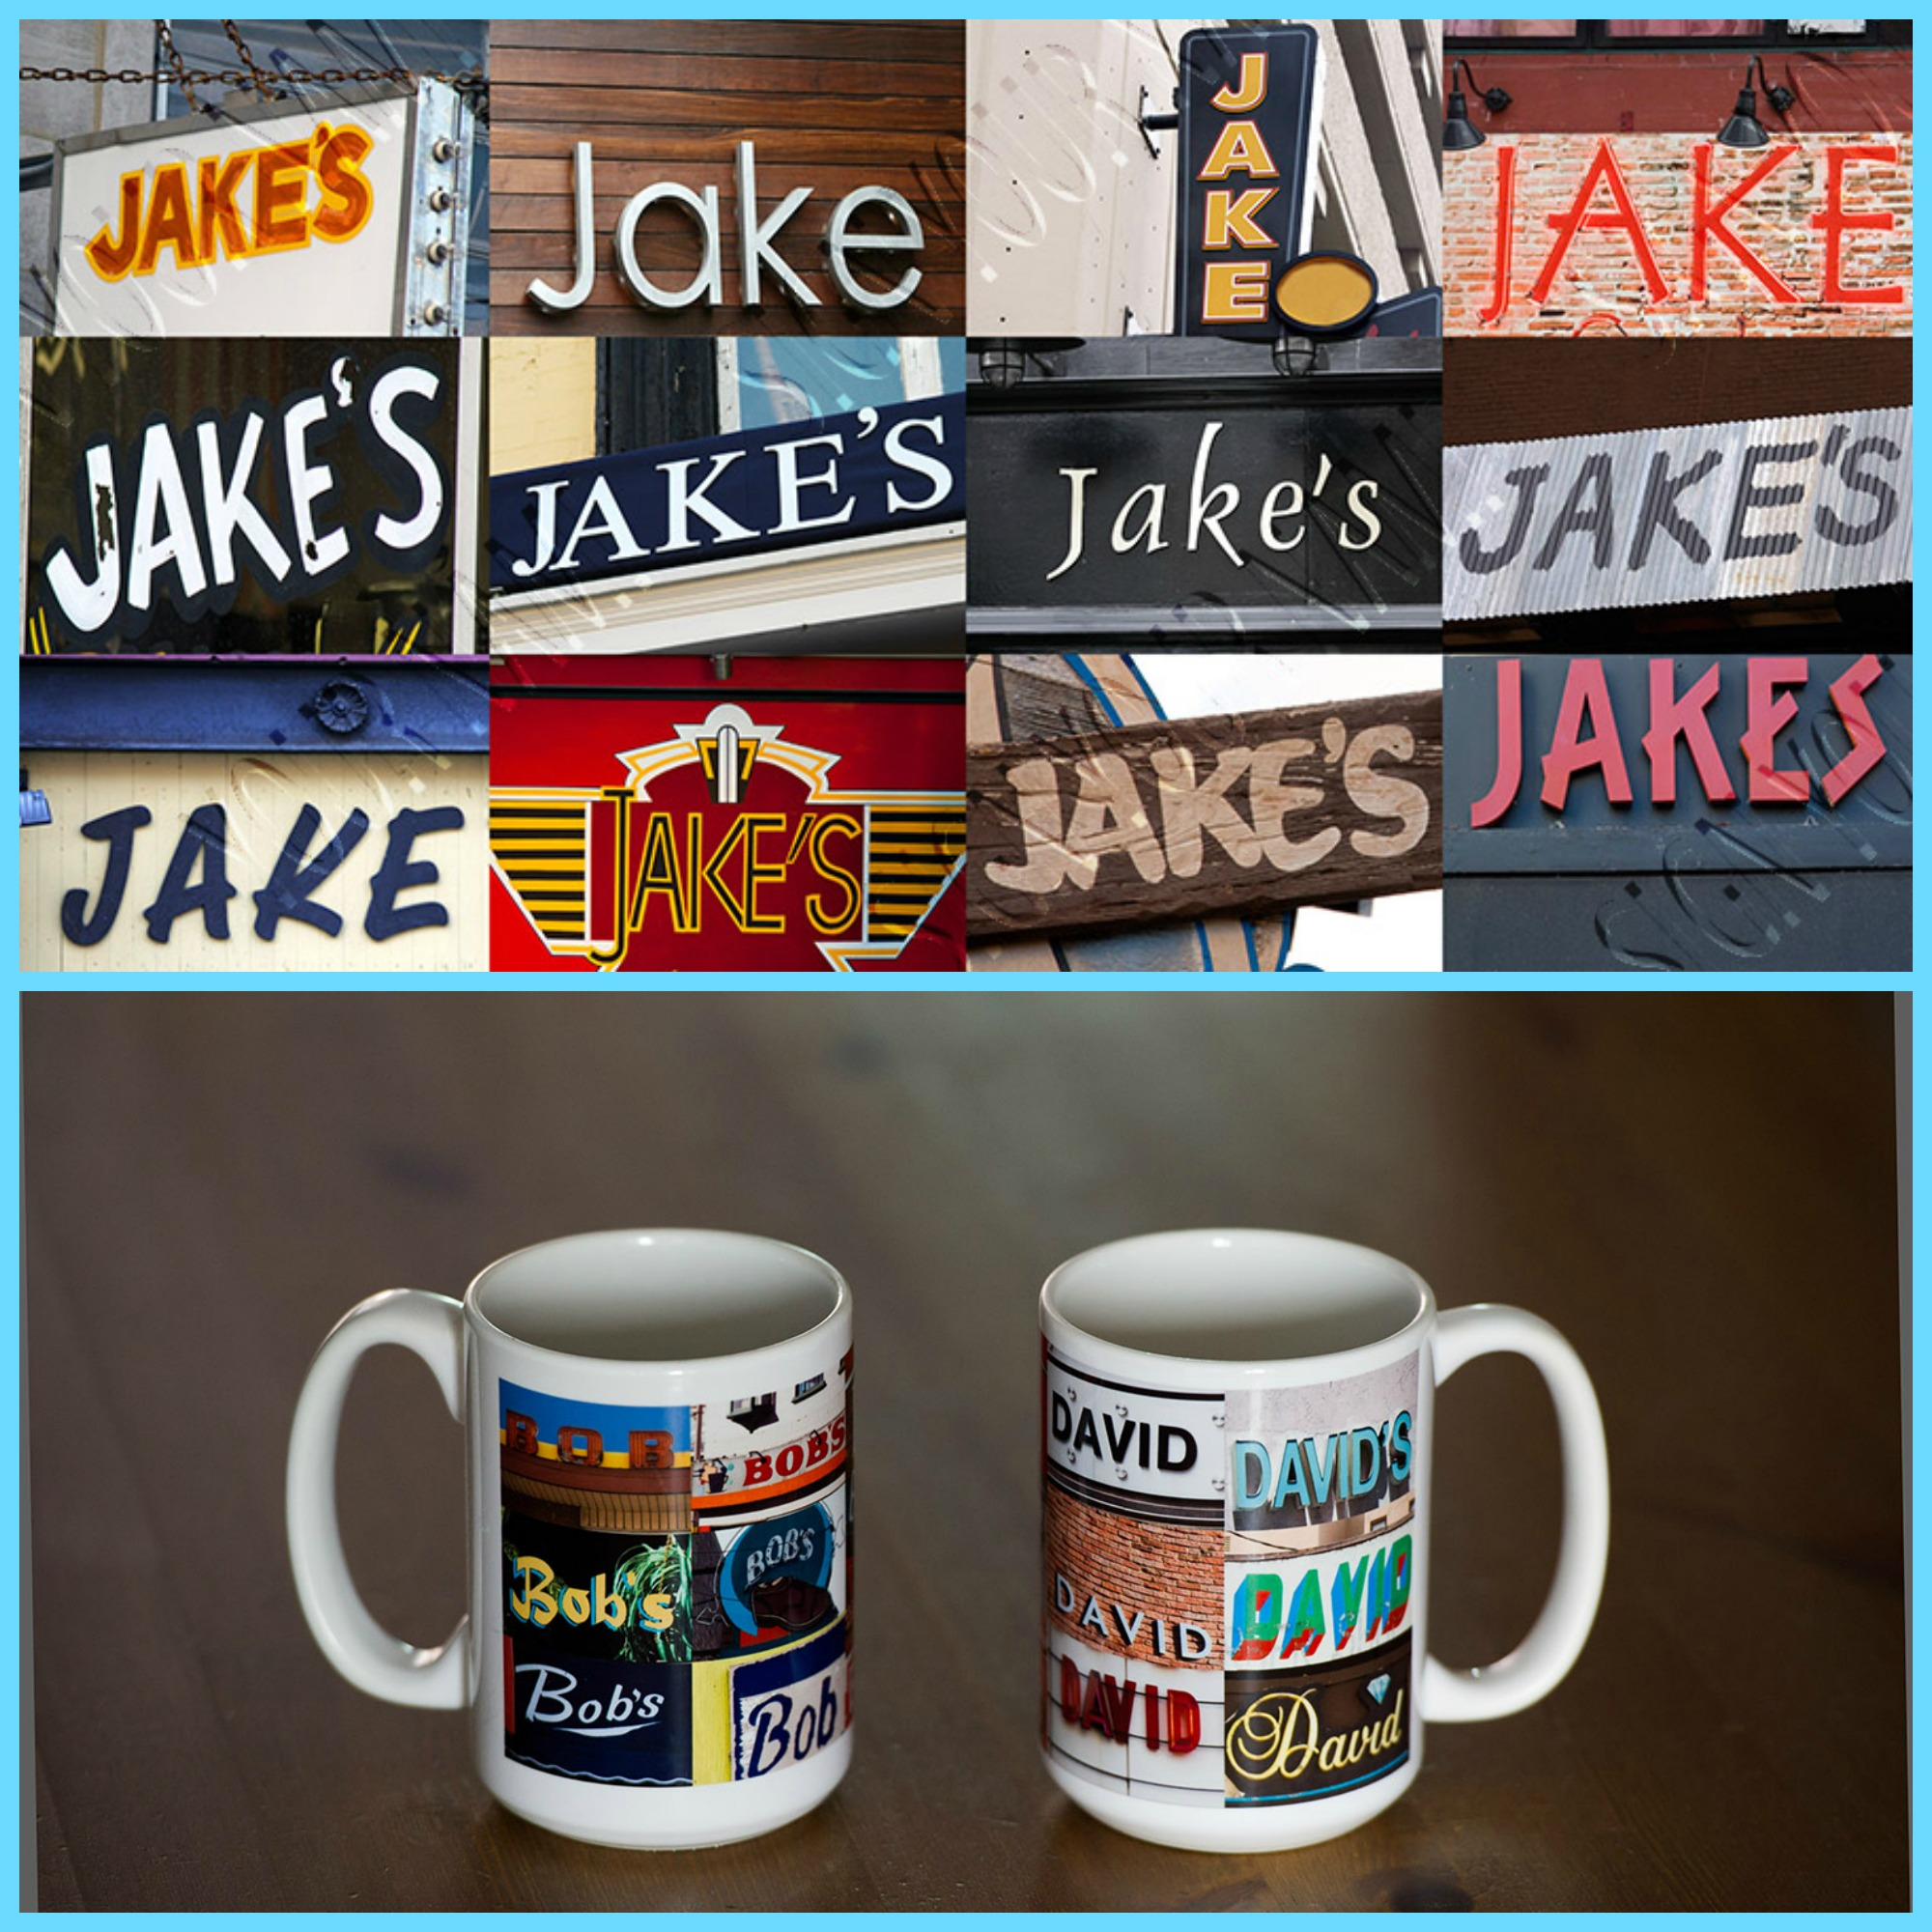 https://www.etsy.com/listing/218816263/personalized-coffee-mug-featuring-the?ref=shop_home_active_2&ga_search_query=jake